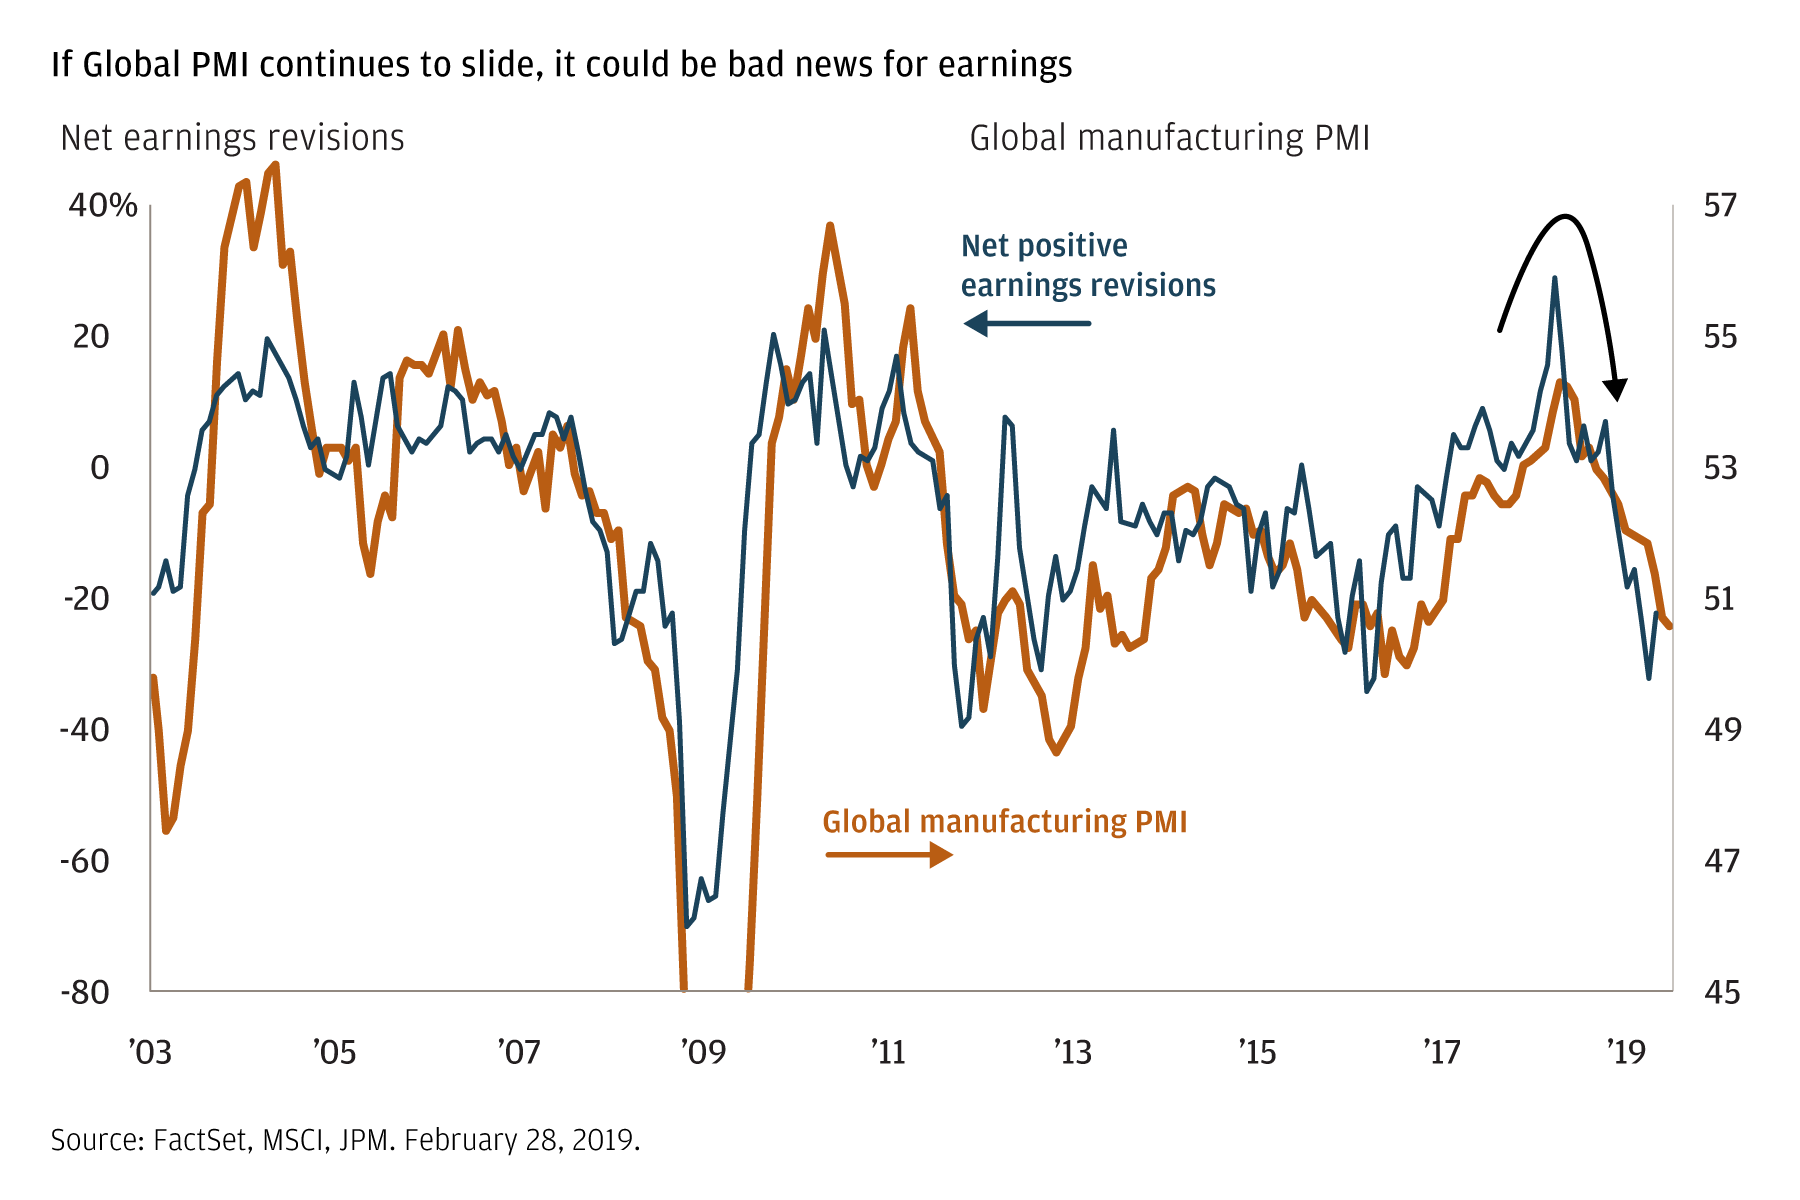 Global PMI suggests earnings at risk